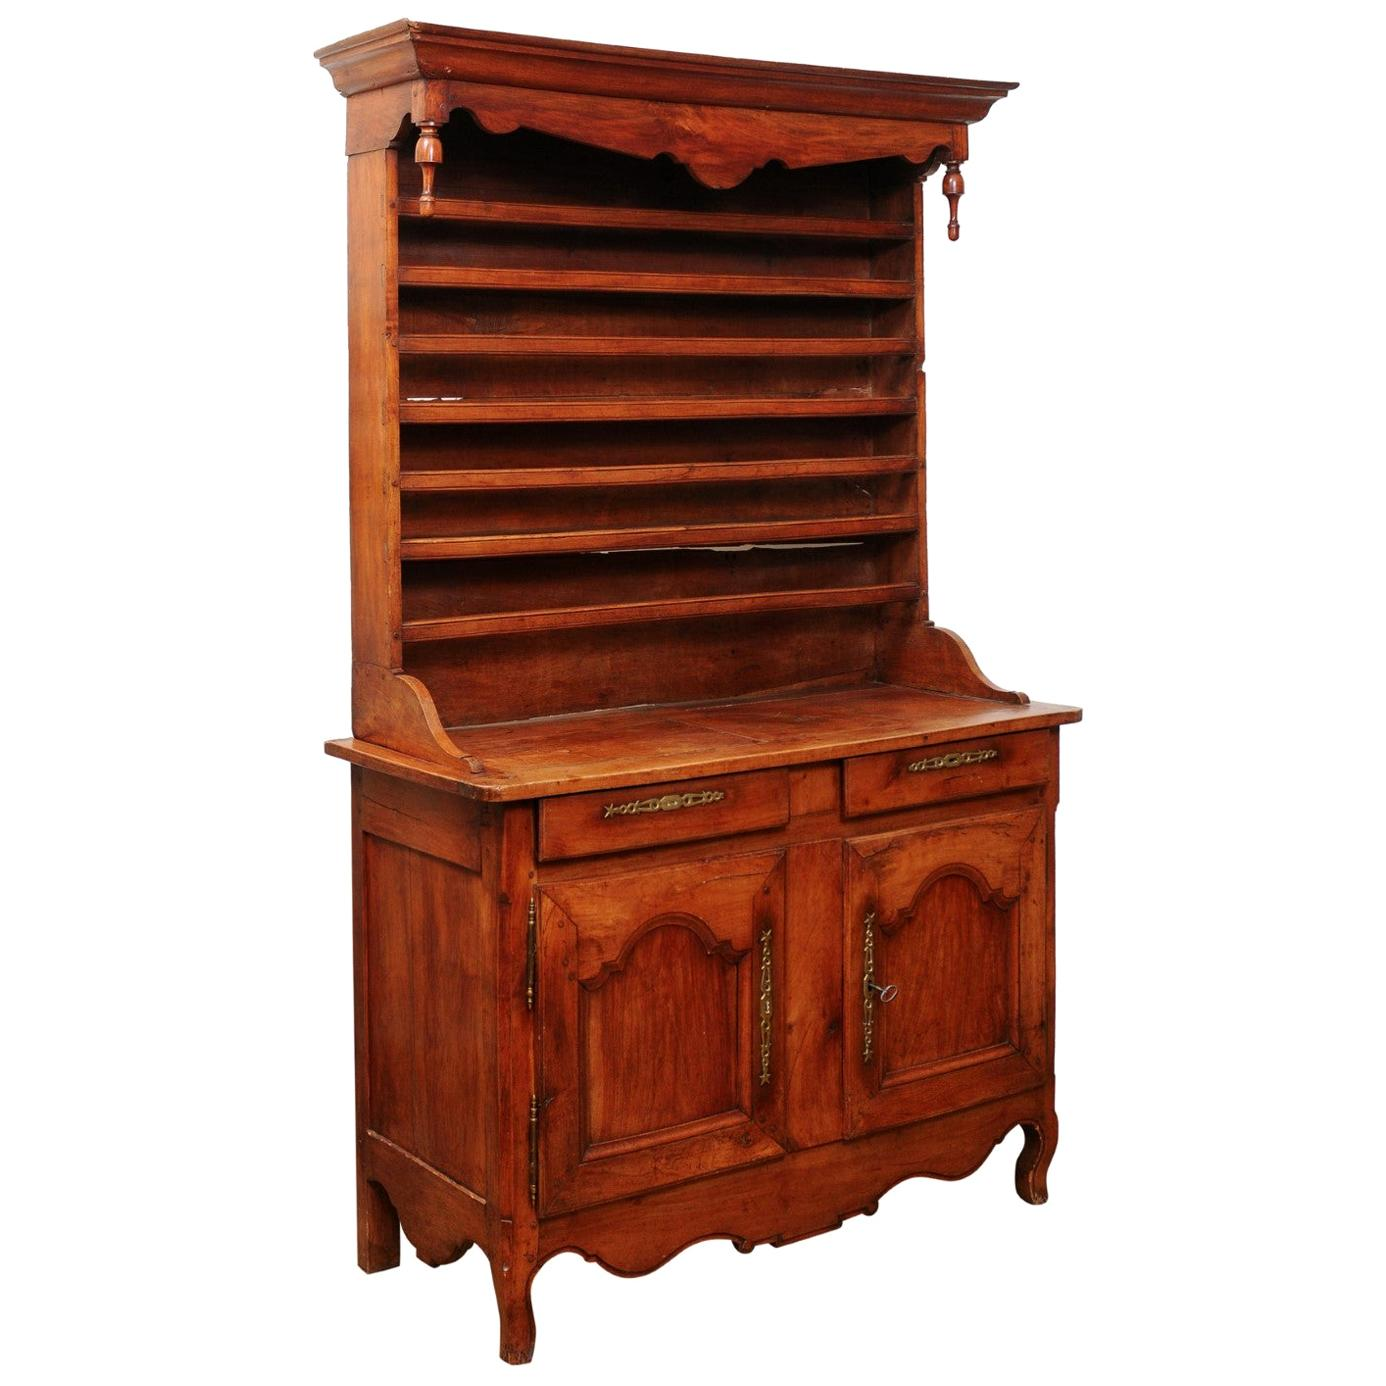 French 19th Century Cherry Vaisselier from the Charente Region with Finials